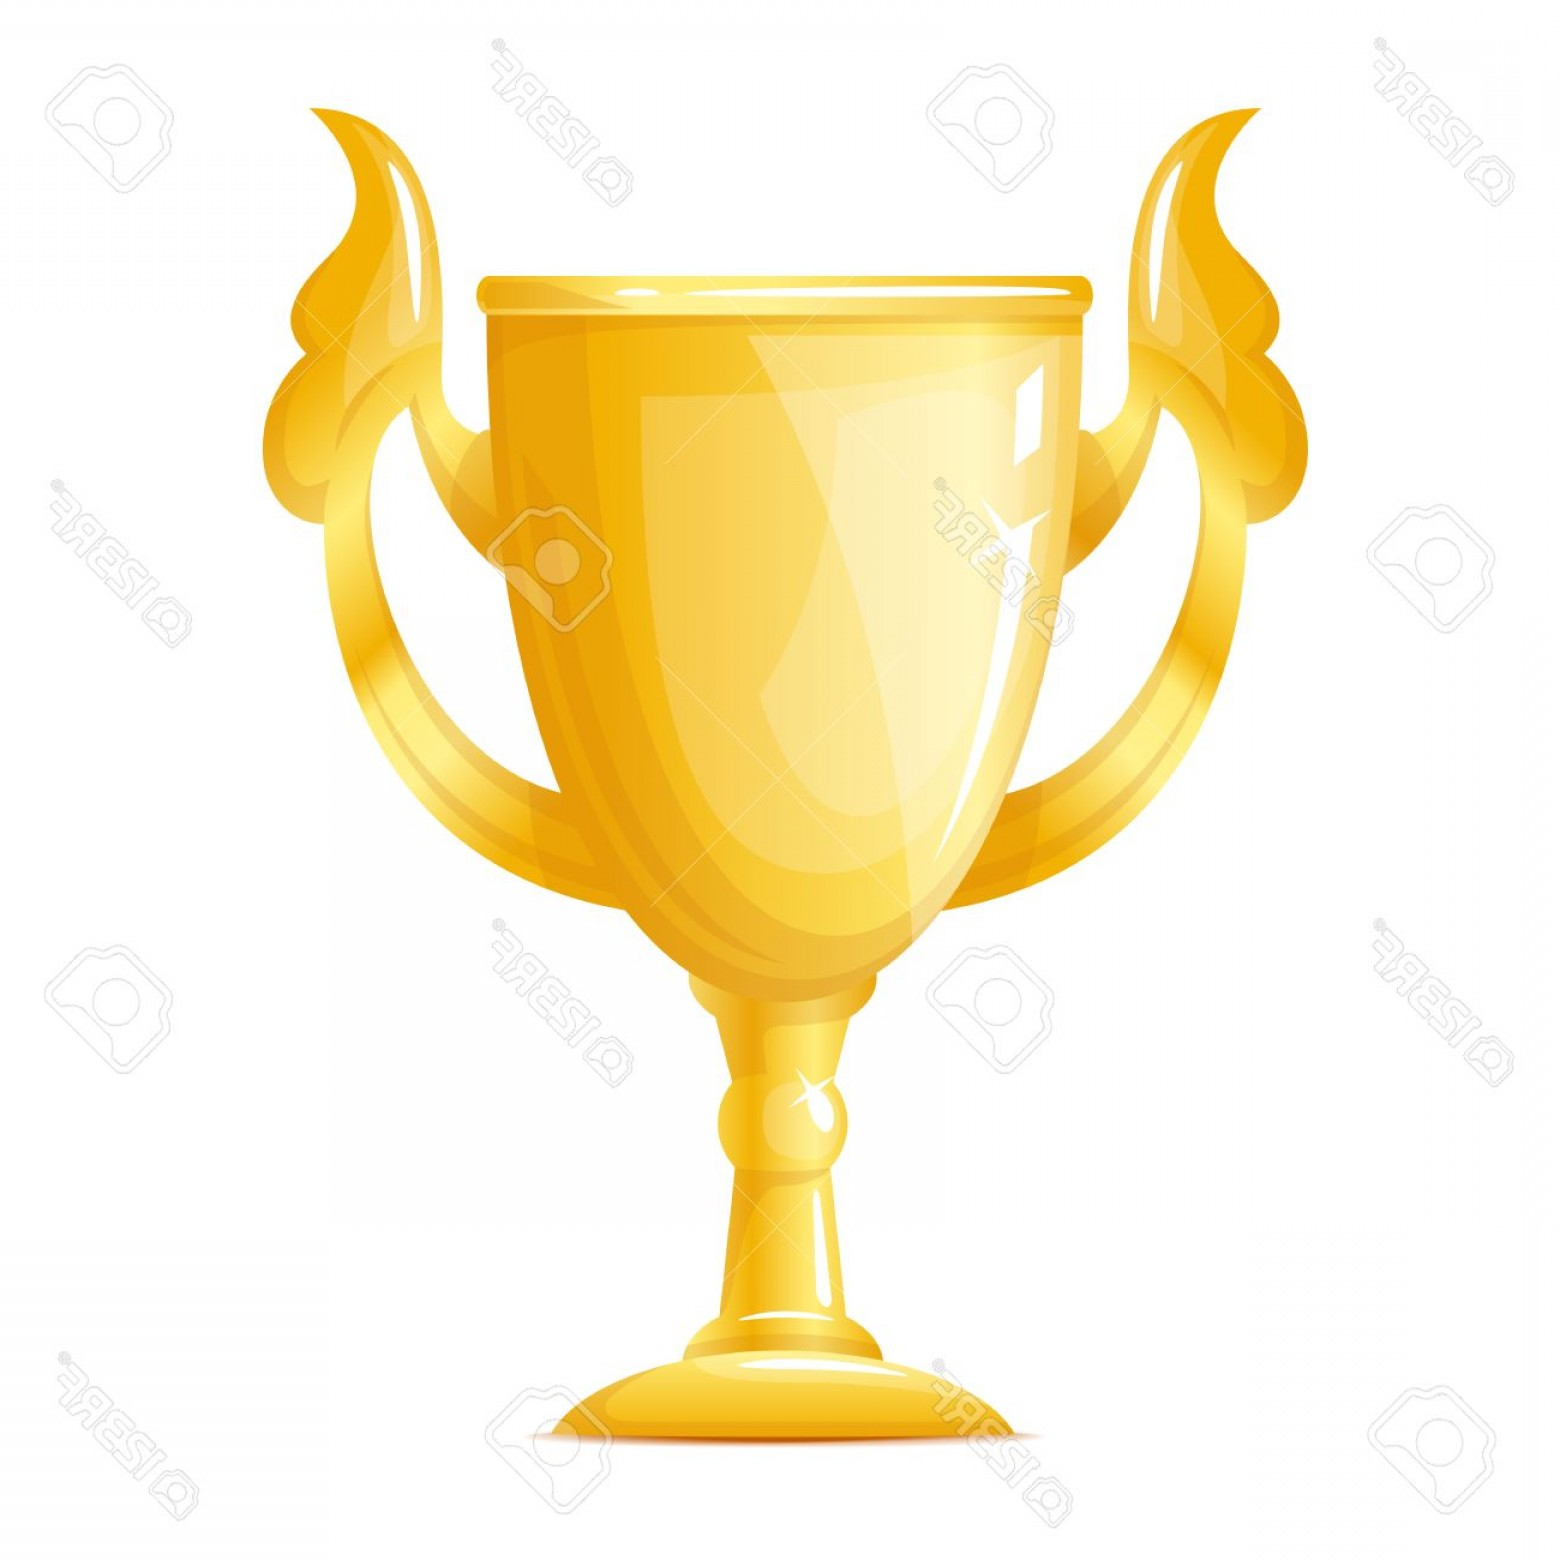 Photostock Vector One Big Golden Cup Gold Trophy Quality Illustration Isolated